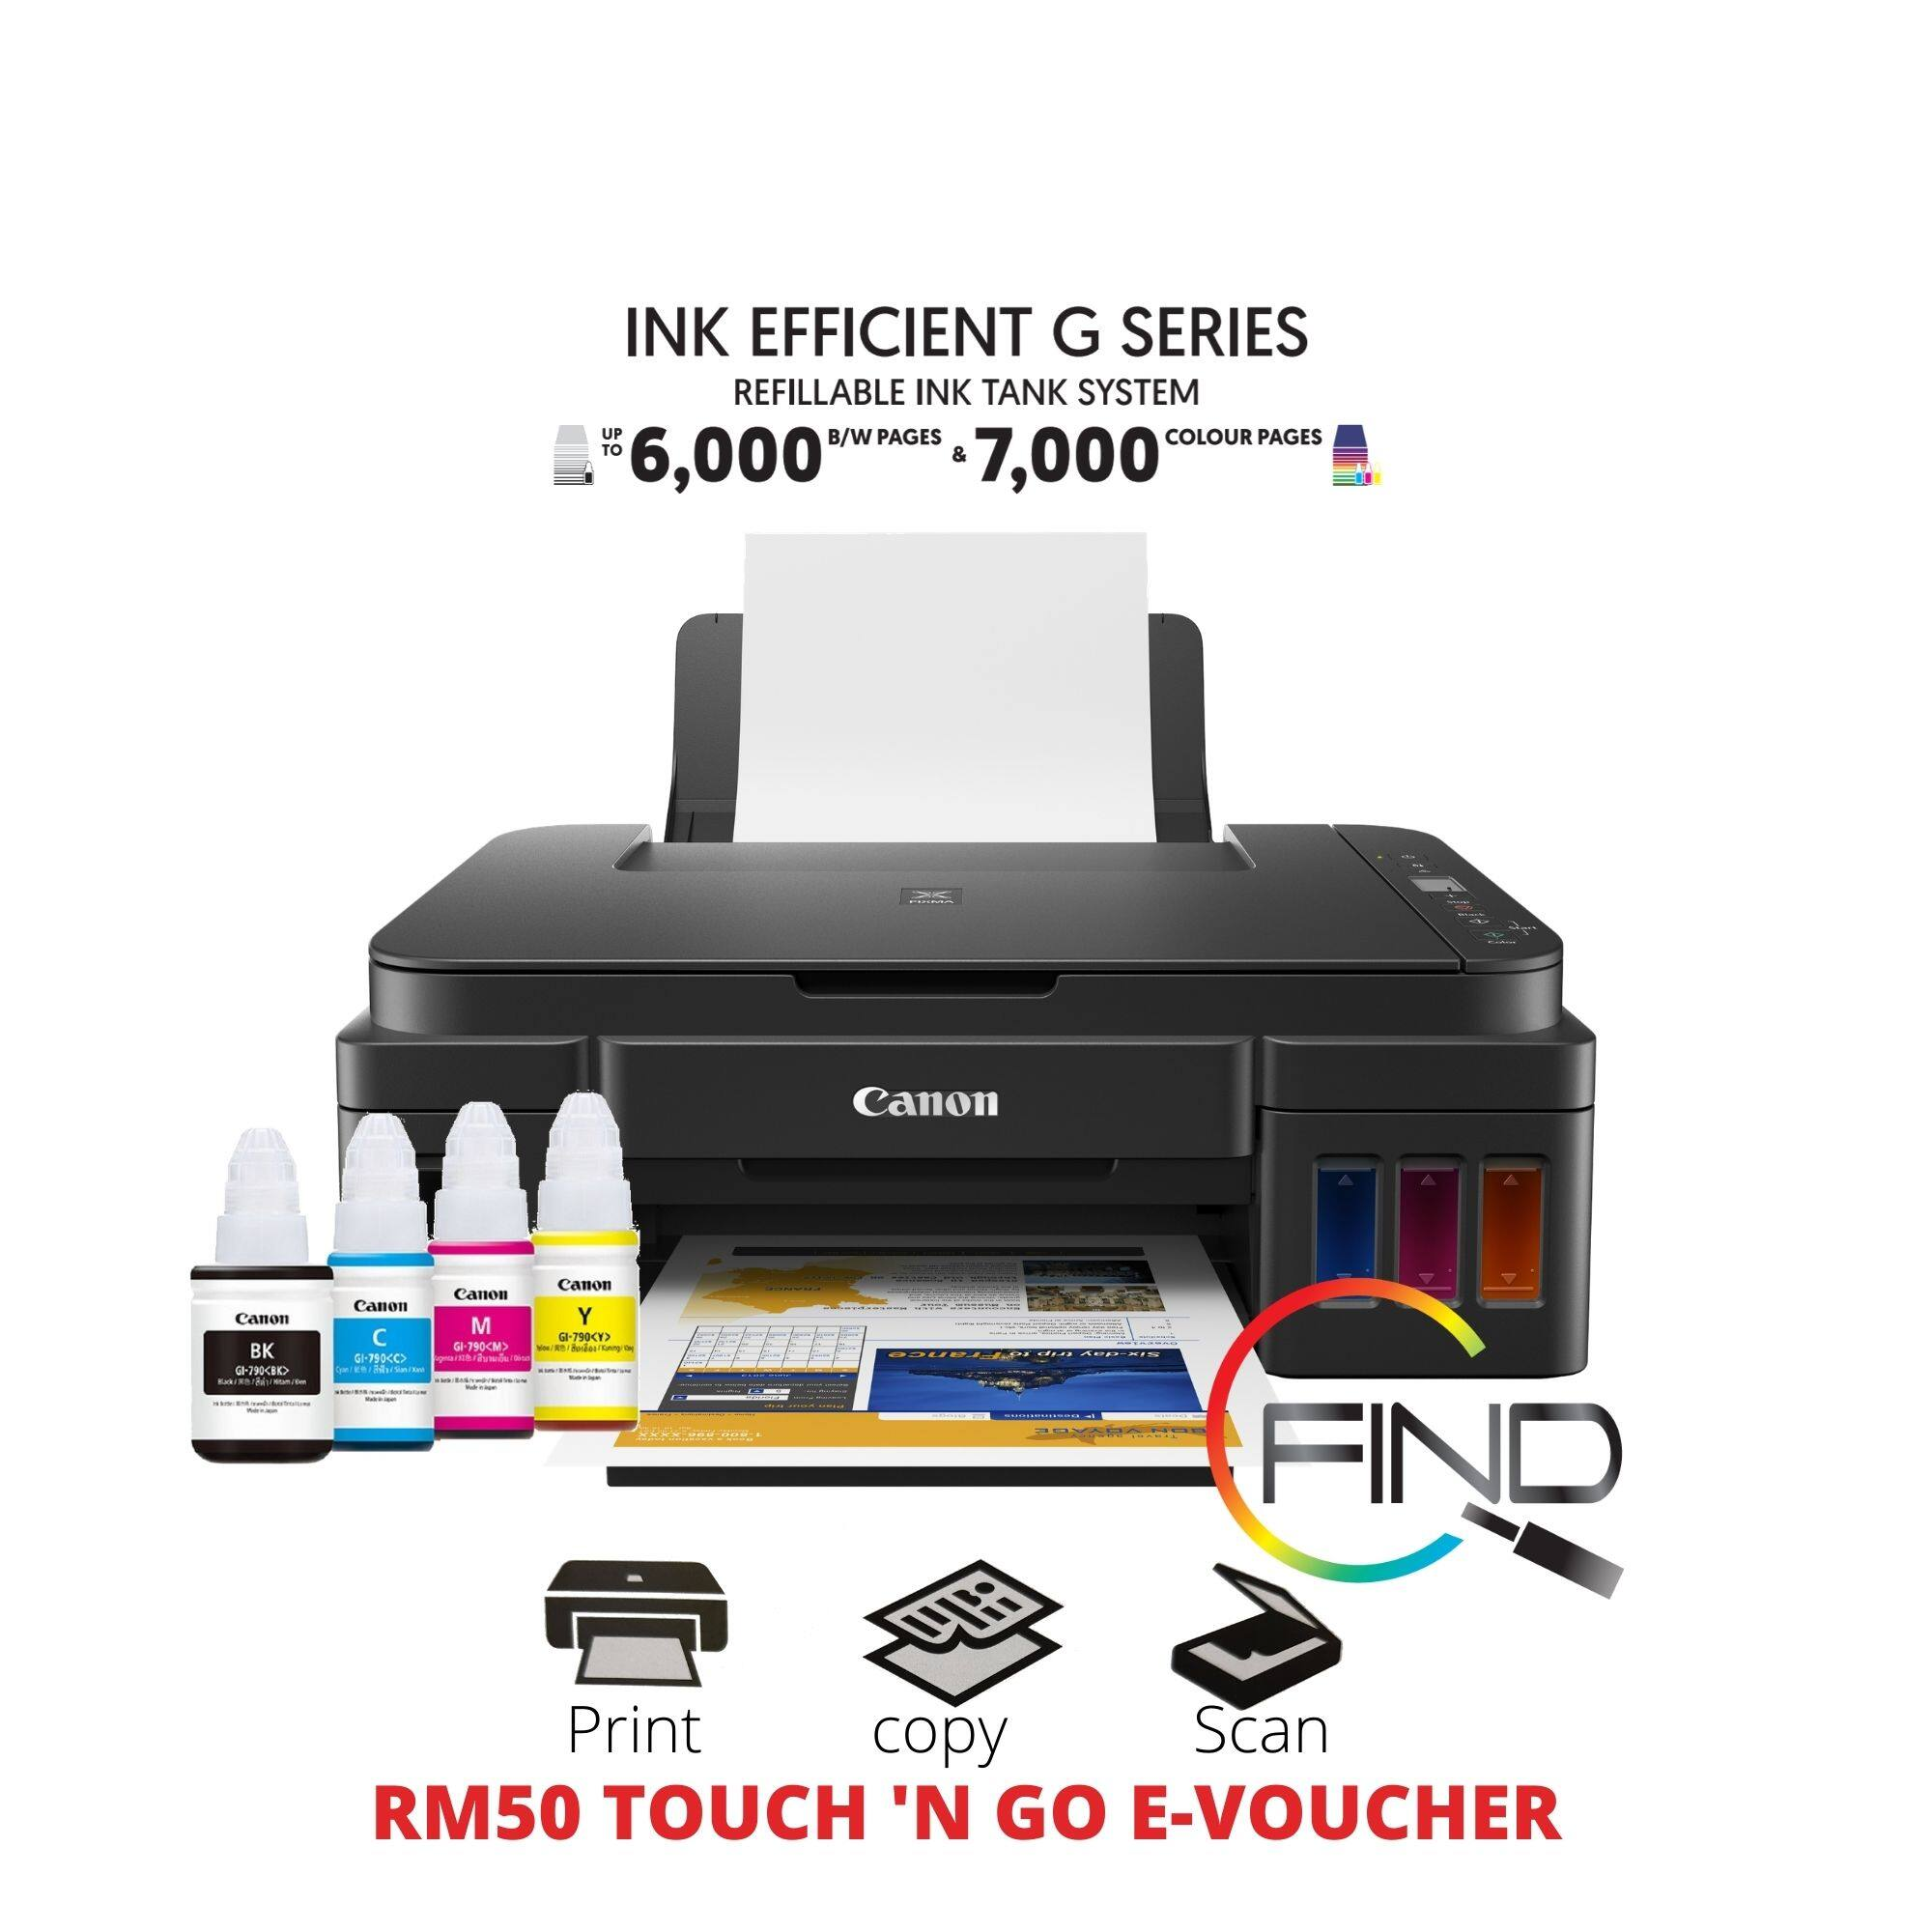 CANON PIXMA G2010 AIO ALL-IN-ONE (PRINT/SCAN/COPY) REFILLABLE INK TANK SYSTEM PRINTER (NOT SUPPORT MAC PC)